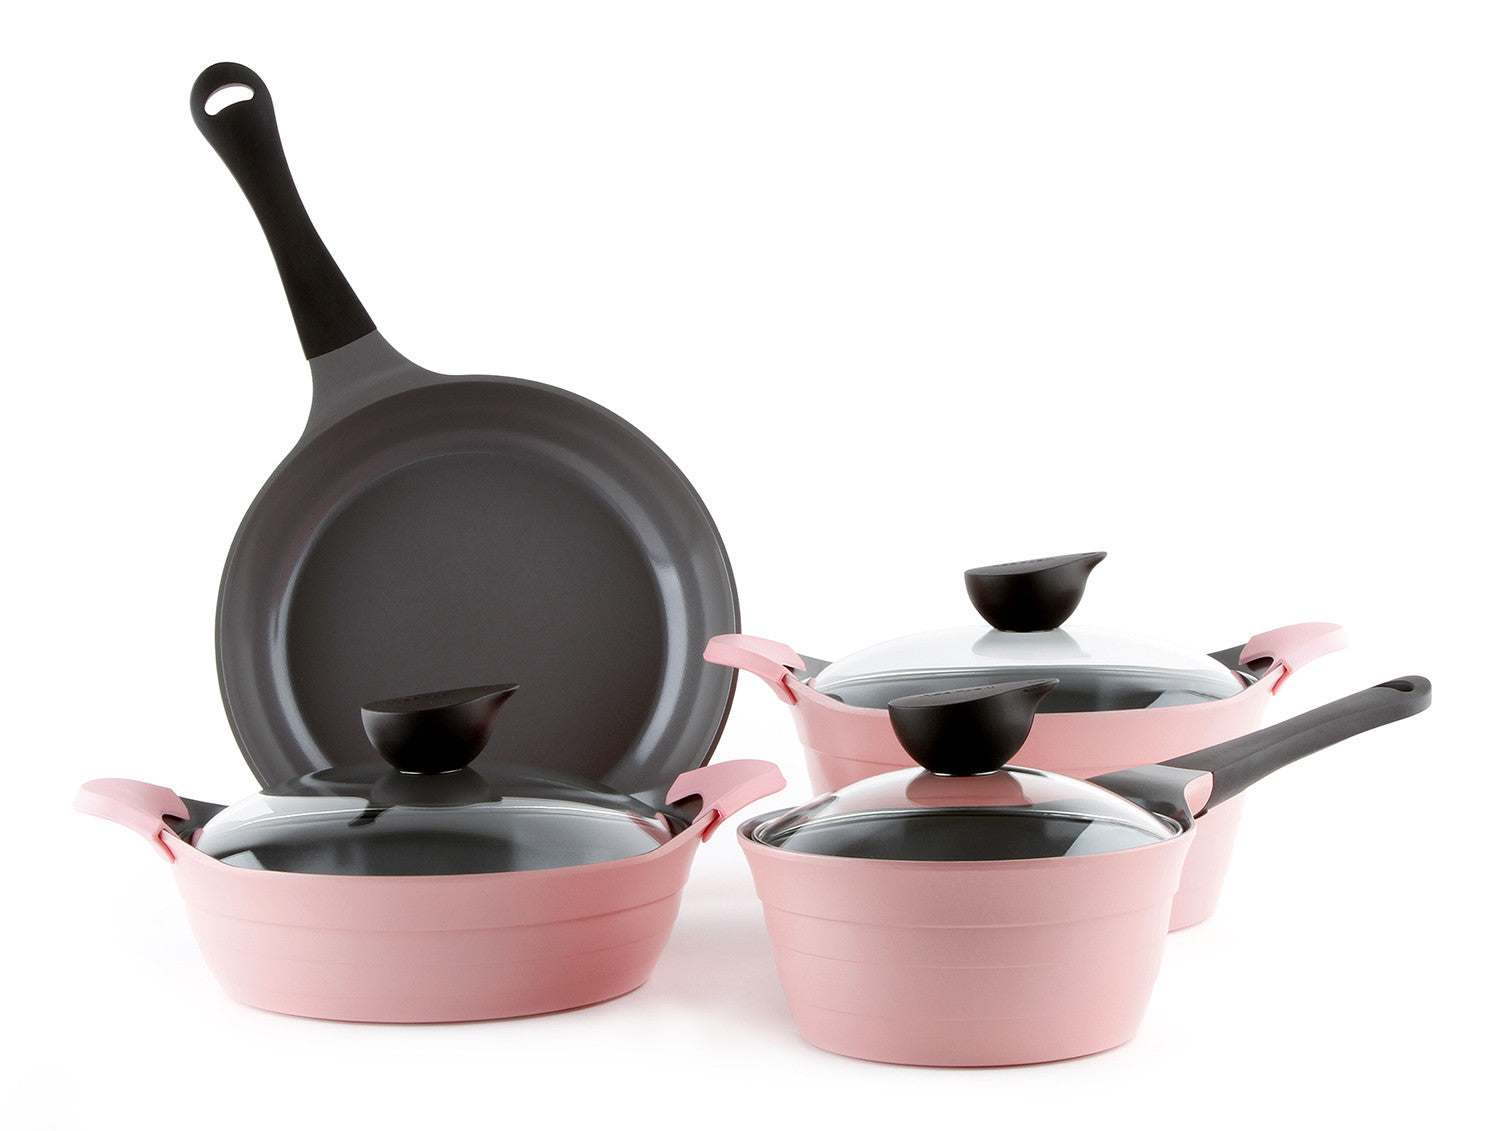 Eela 7pc Cookware Set Ndash Neoflam